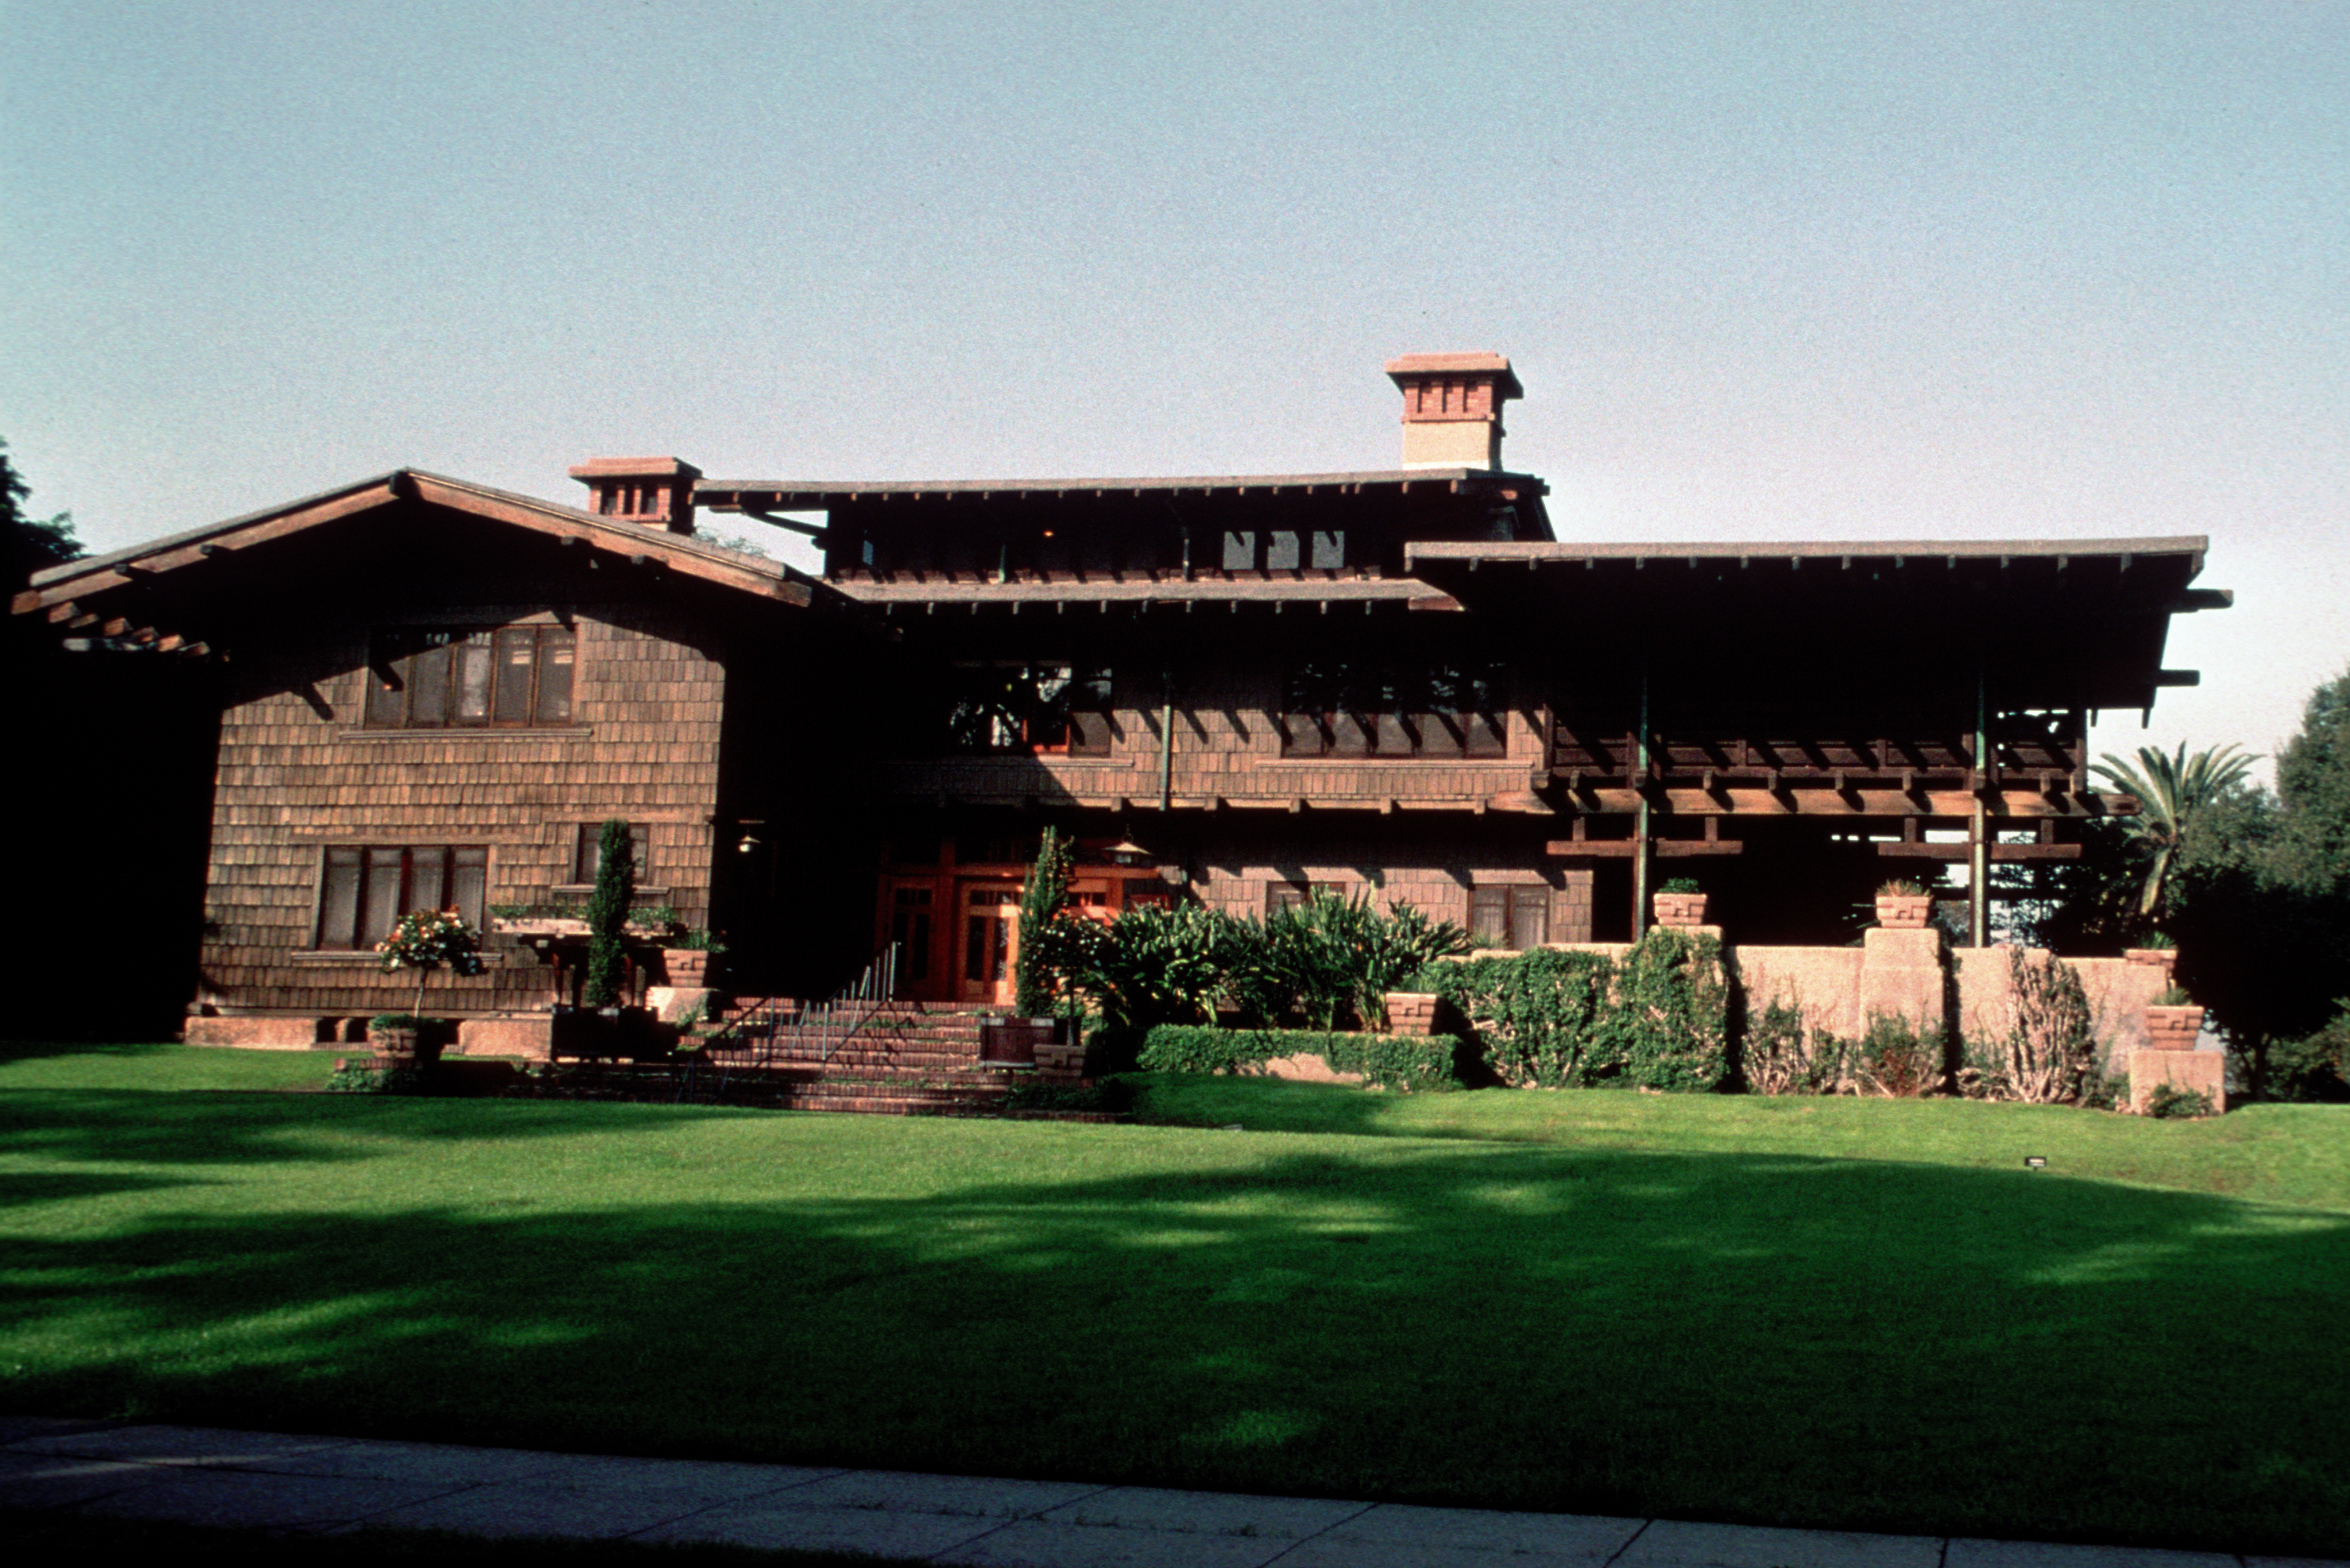 Restaurants near gamble house pasadena carte cadeau casino barriere